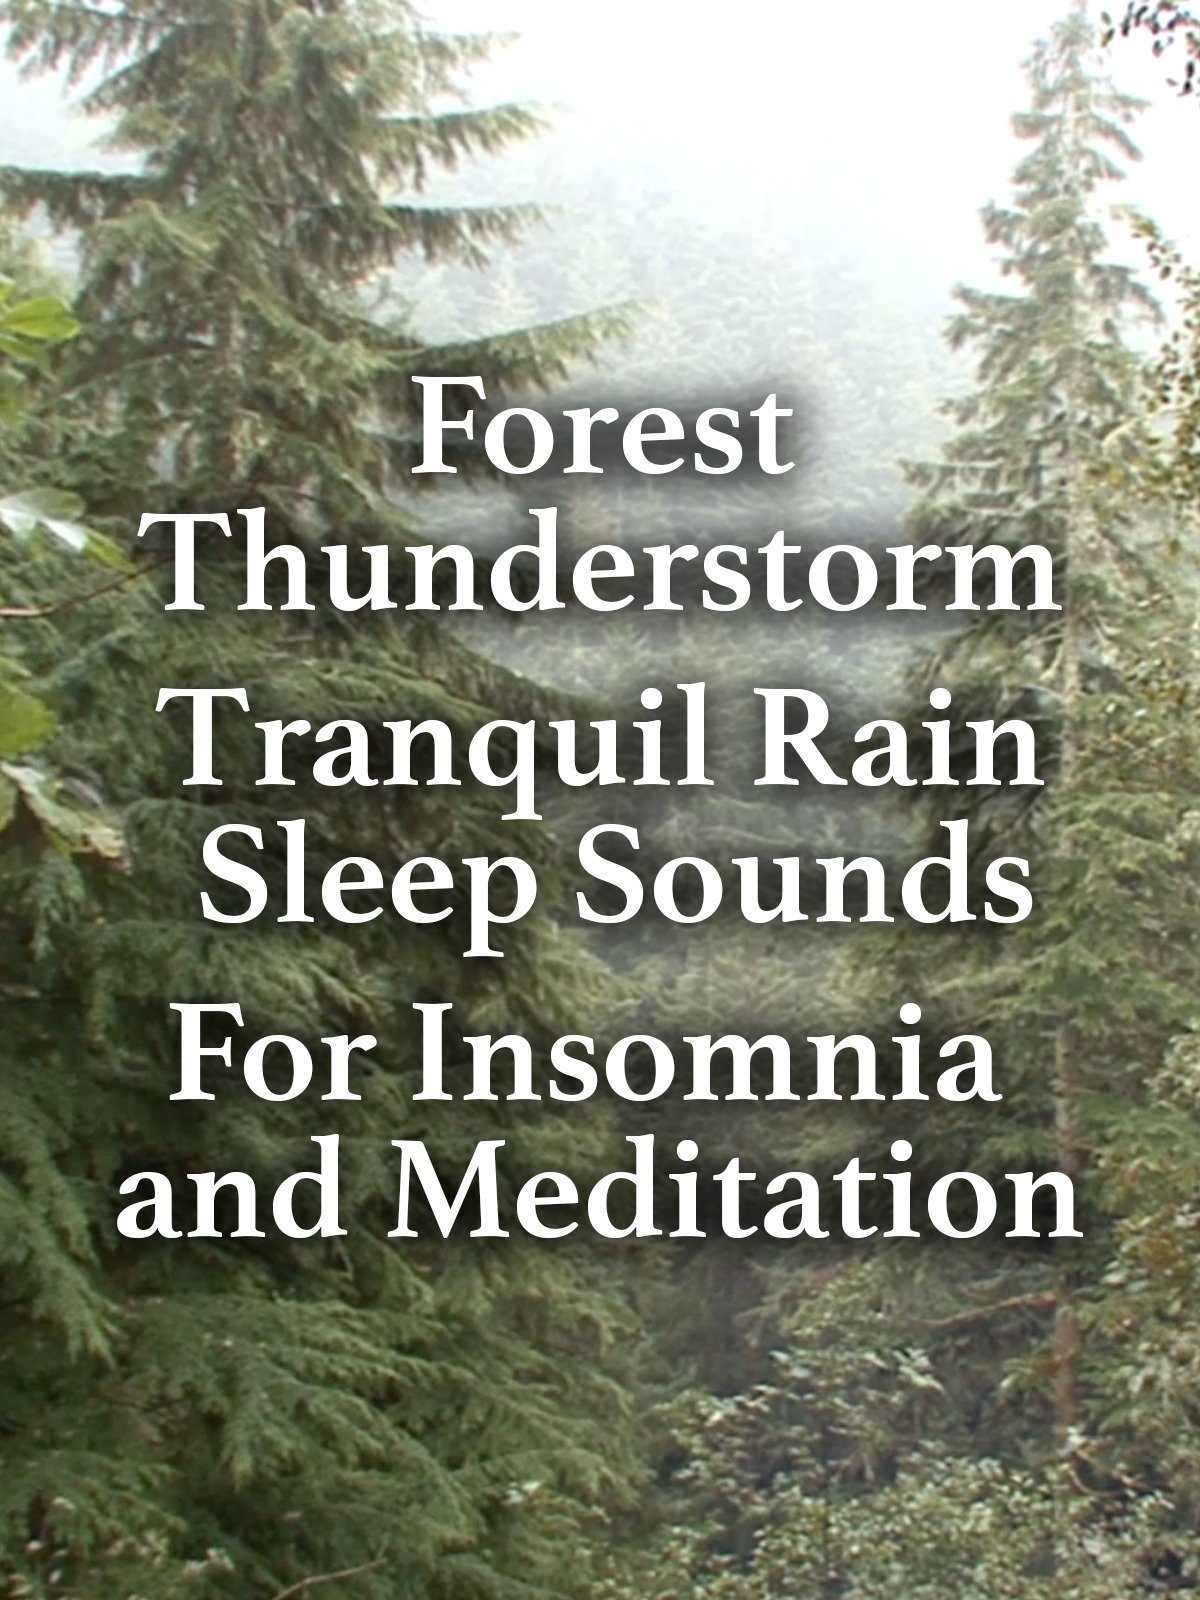 Watch 'Forest Thunderstorm Tranquil Rain Sleep Sounds for